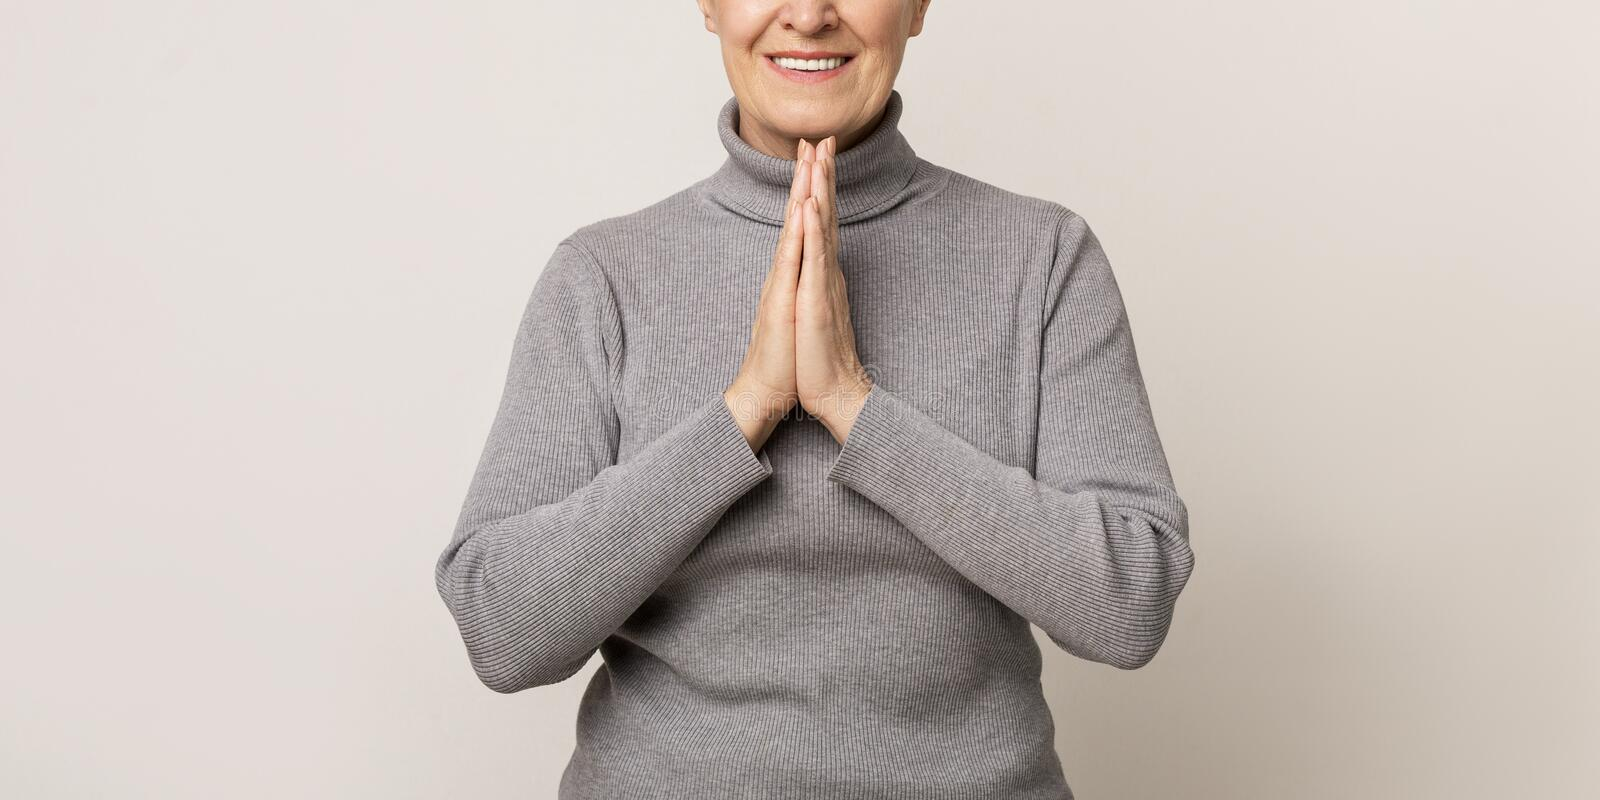 Aged woman with clasped hands, pleading or appealing for something. royalty free stock photos